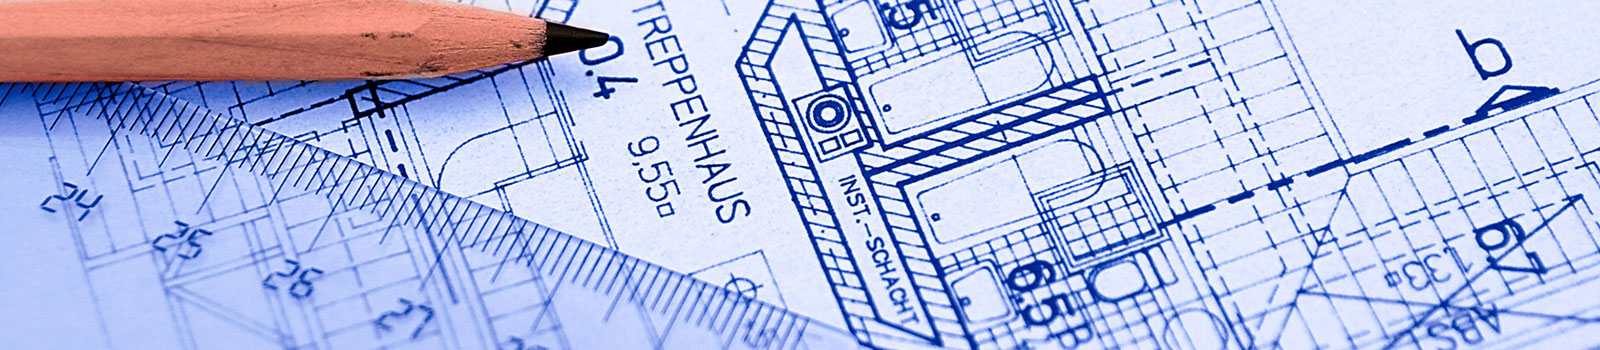 building plans grow banner